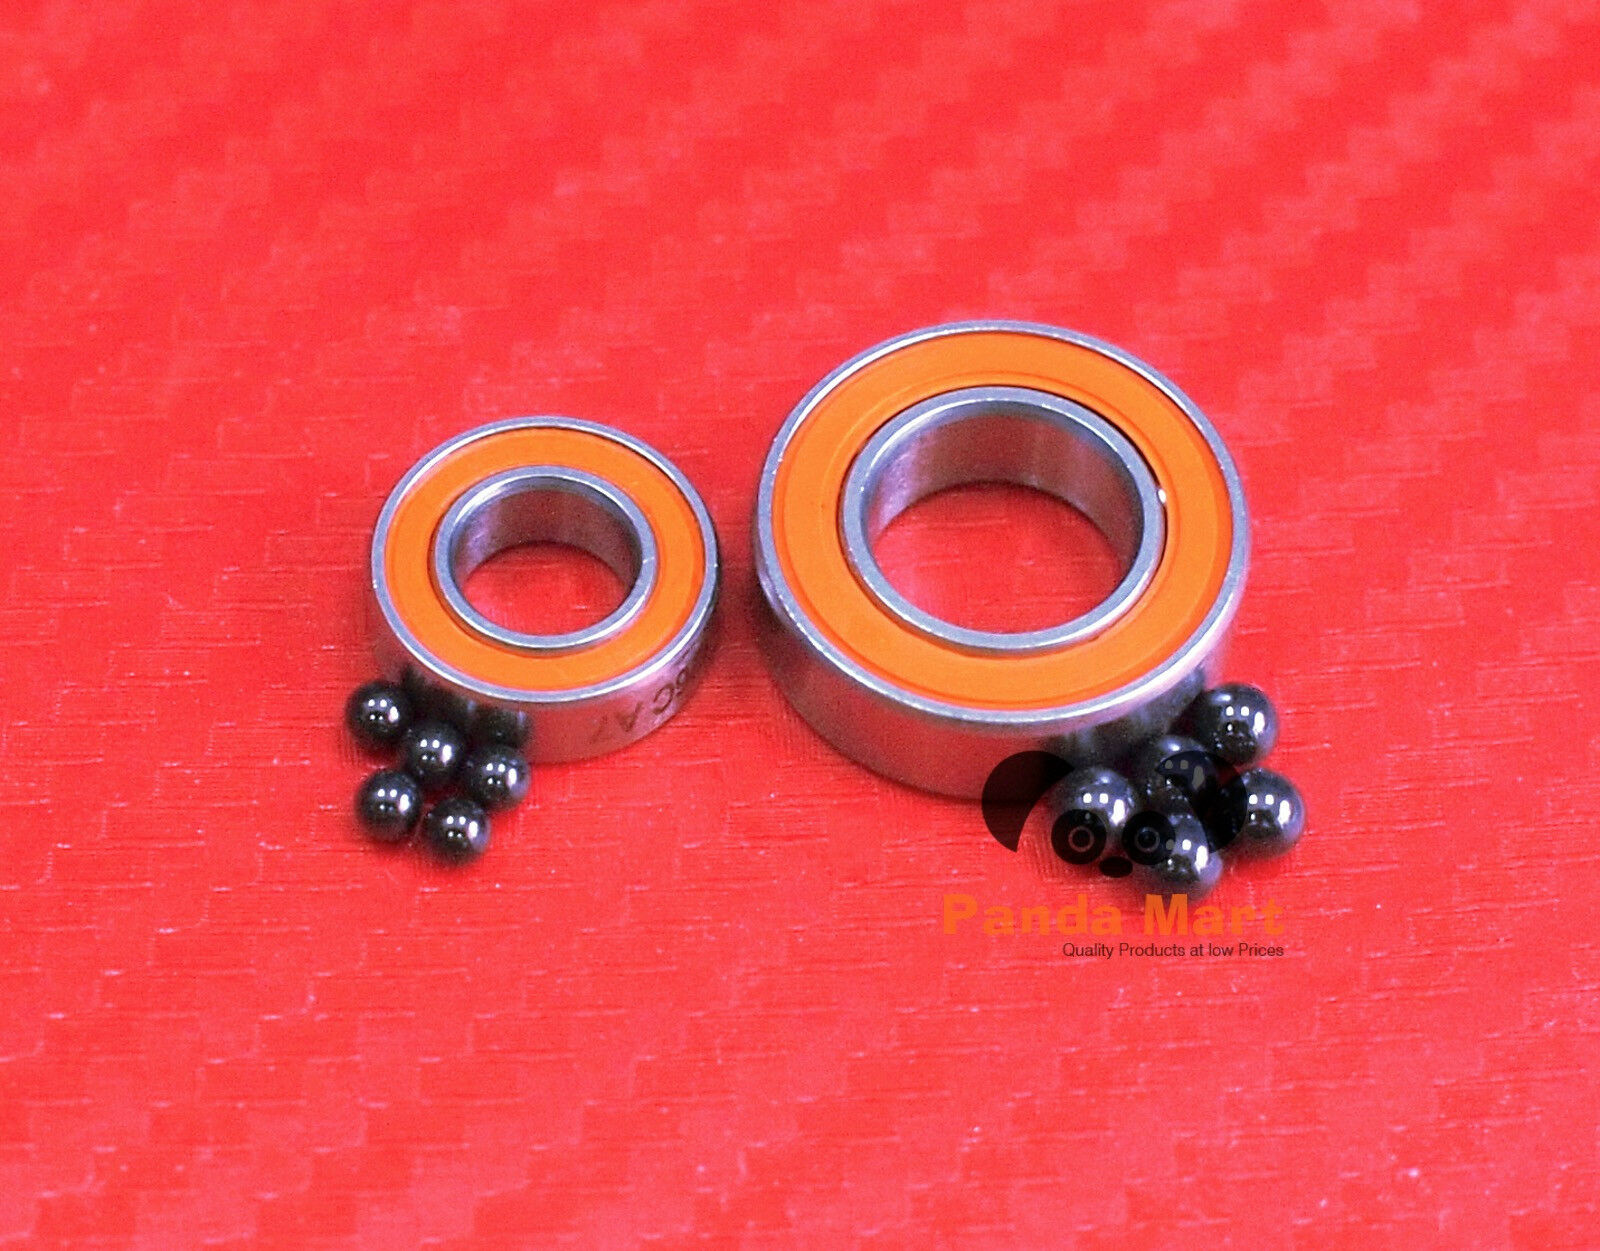 Hybrid Ceramic Ball Bearings Fits QUANTUM ENERGY E100SPT -  ABEC-7 Bearing  promotional items